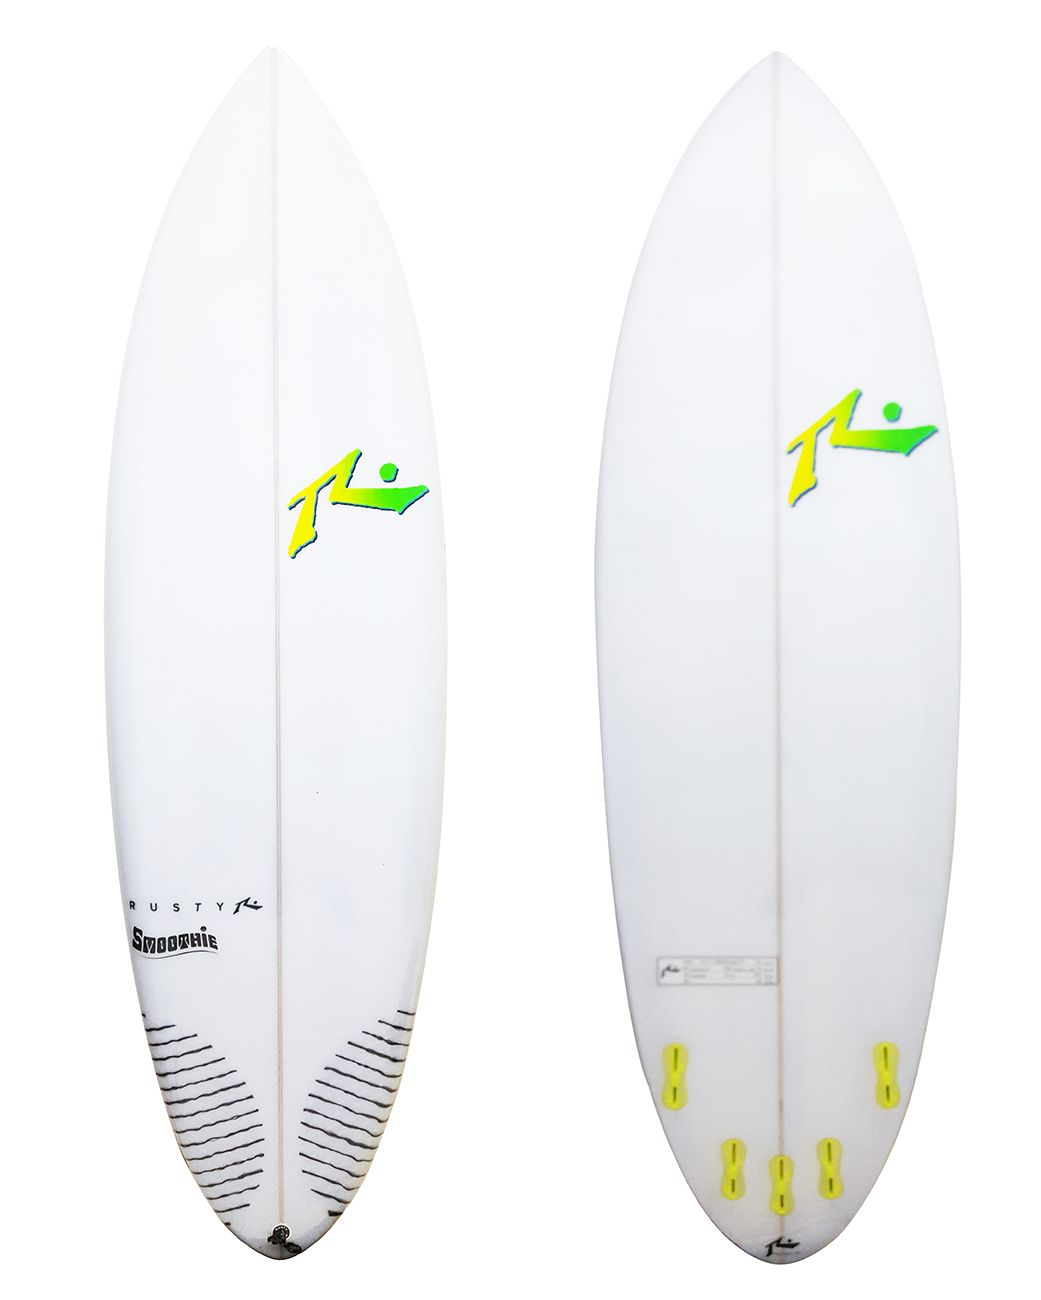 Rusty 6'0'' Smoothie FCS II